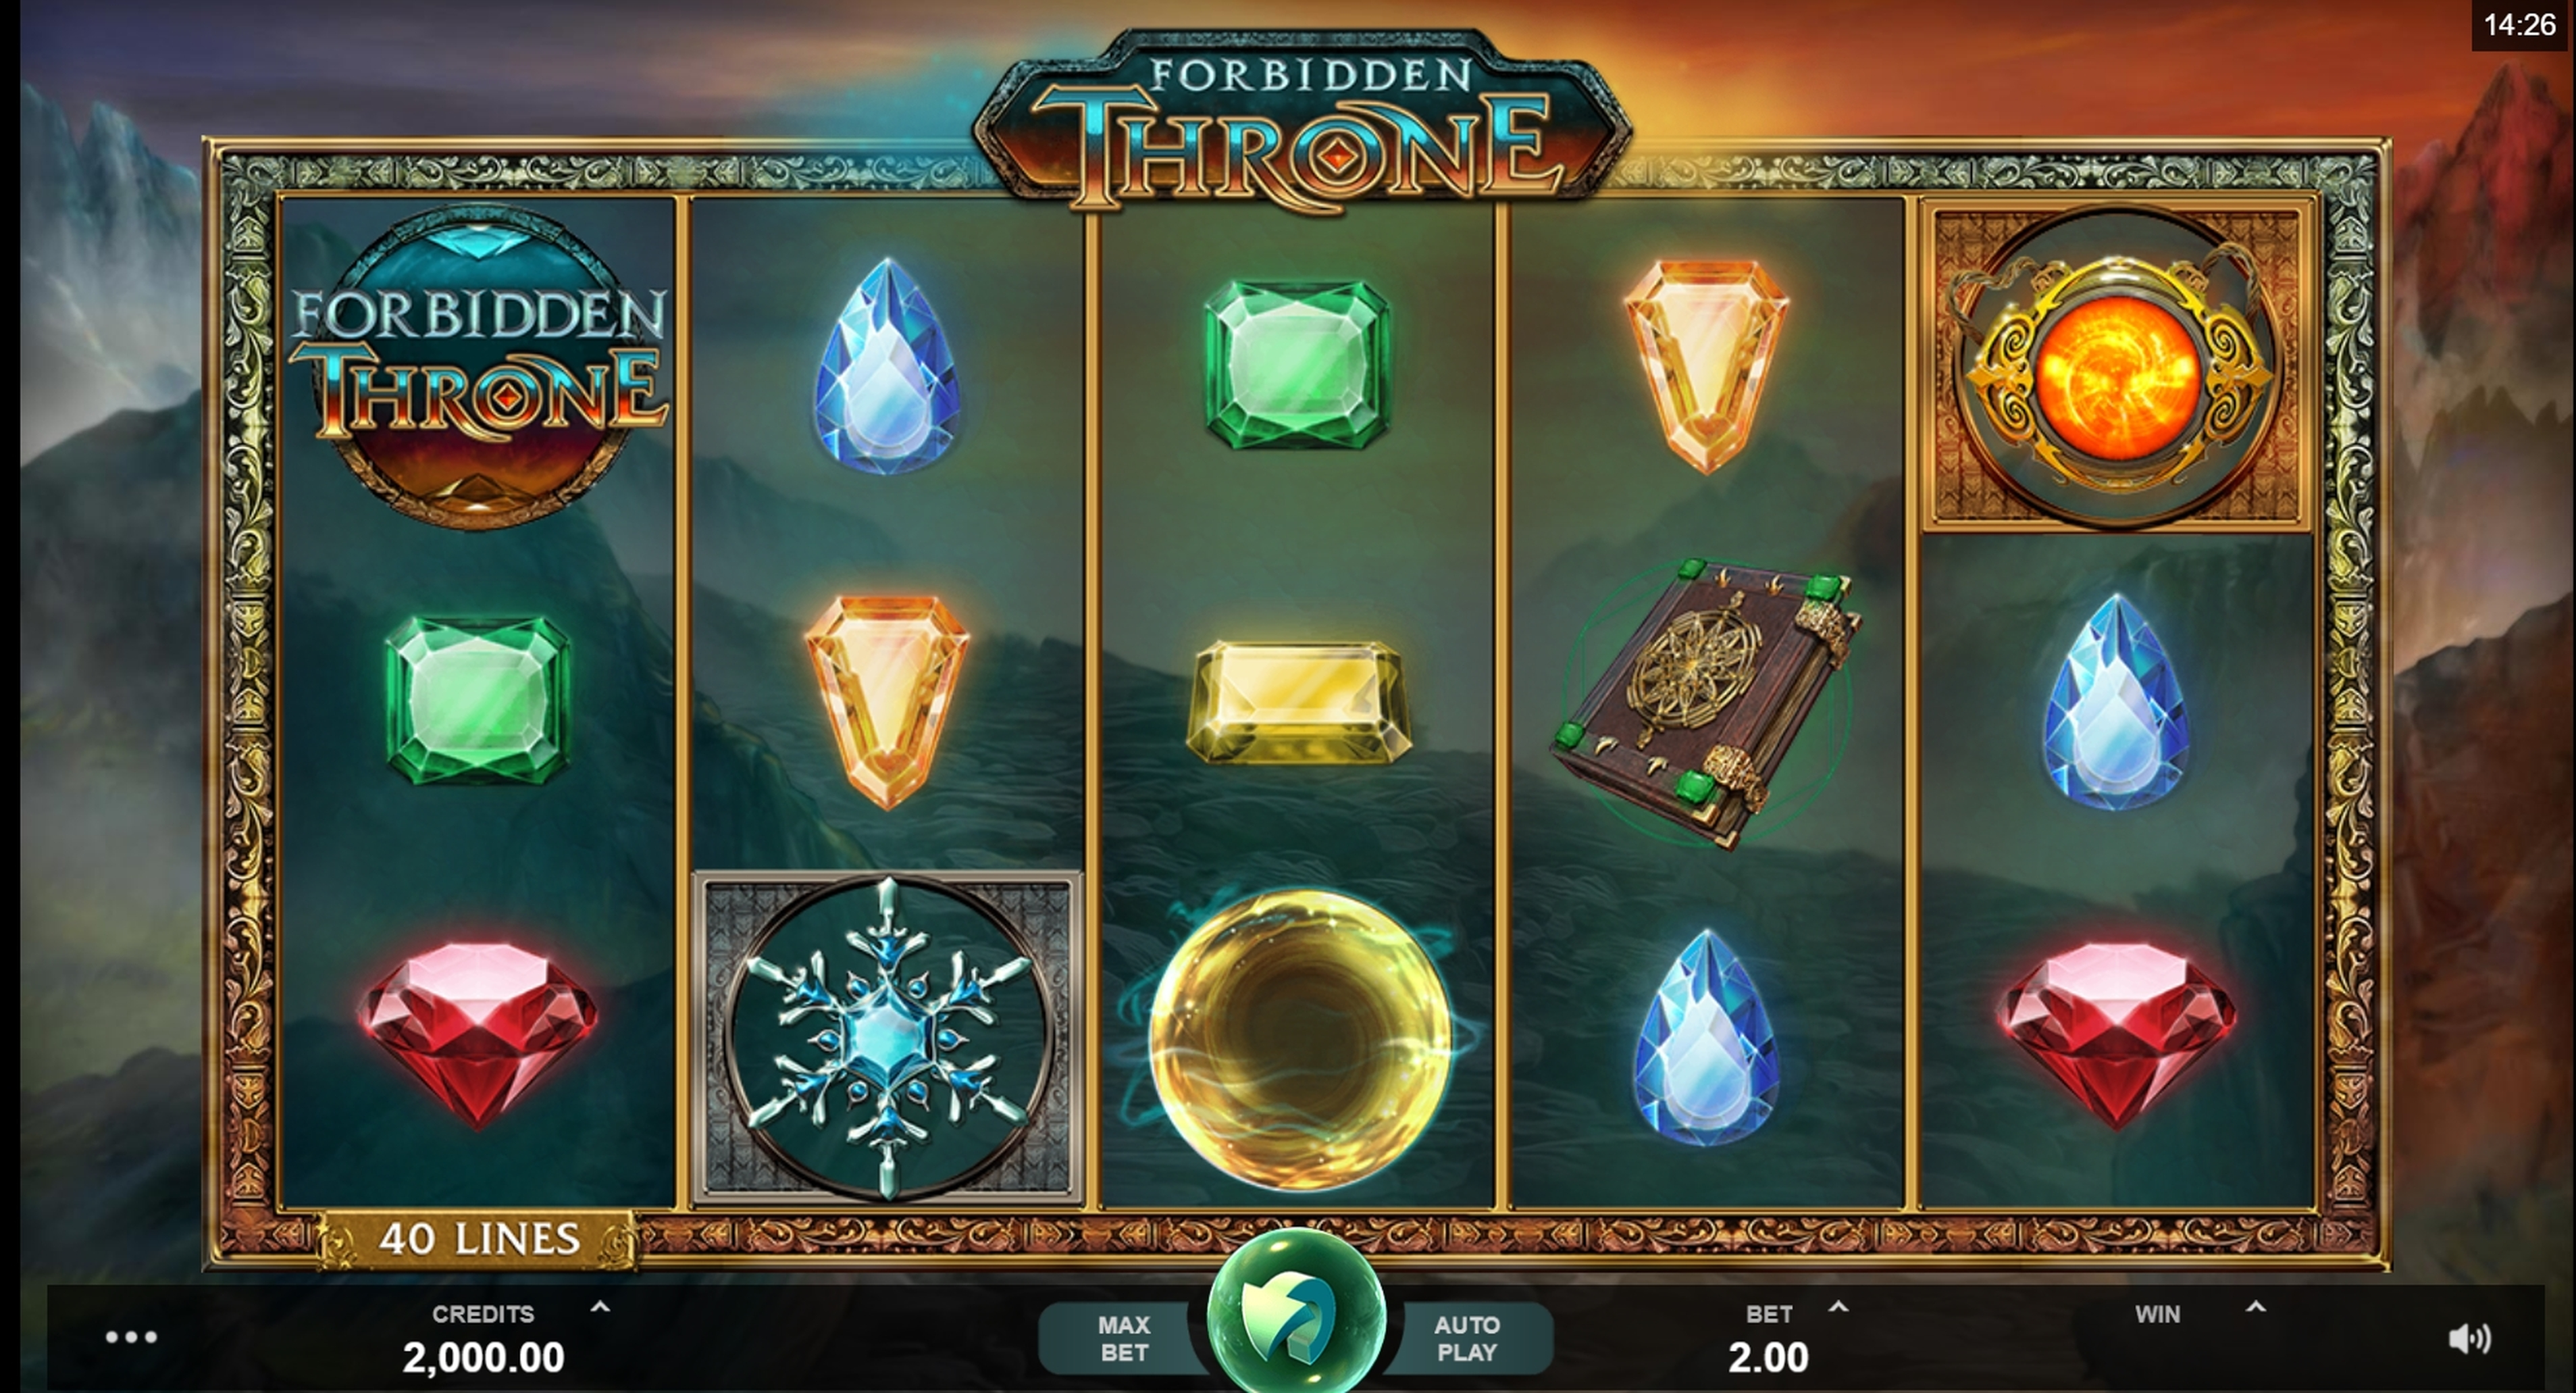 Reels in Forbidden Throne Slot Game by MahiGaming